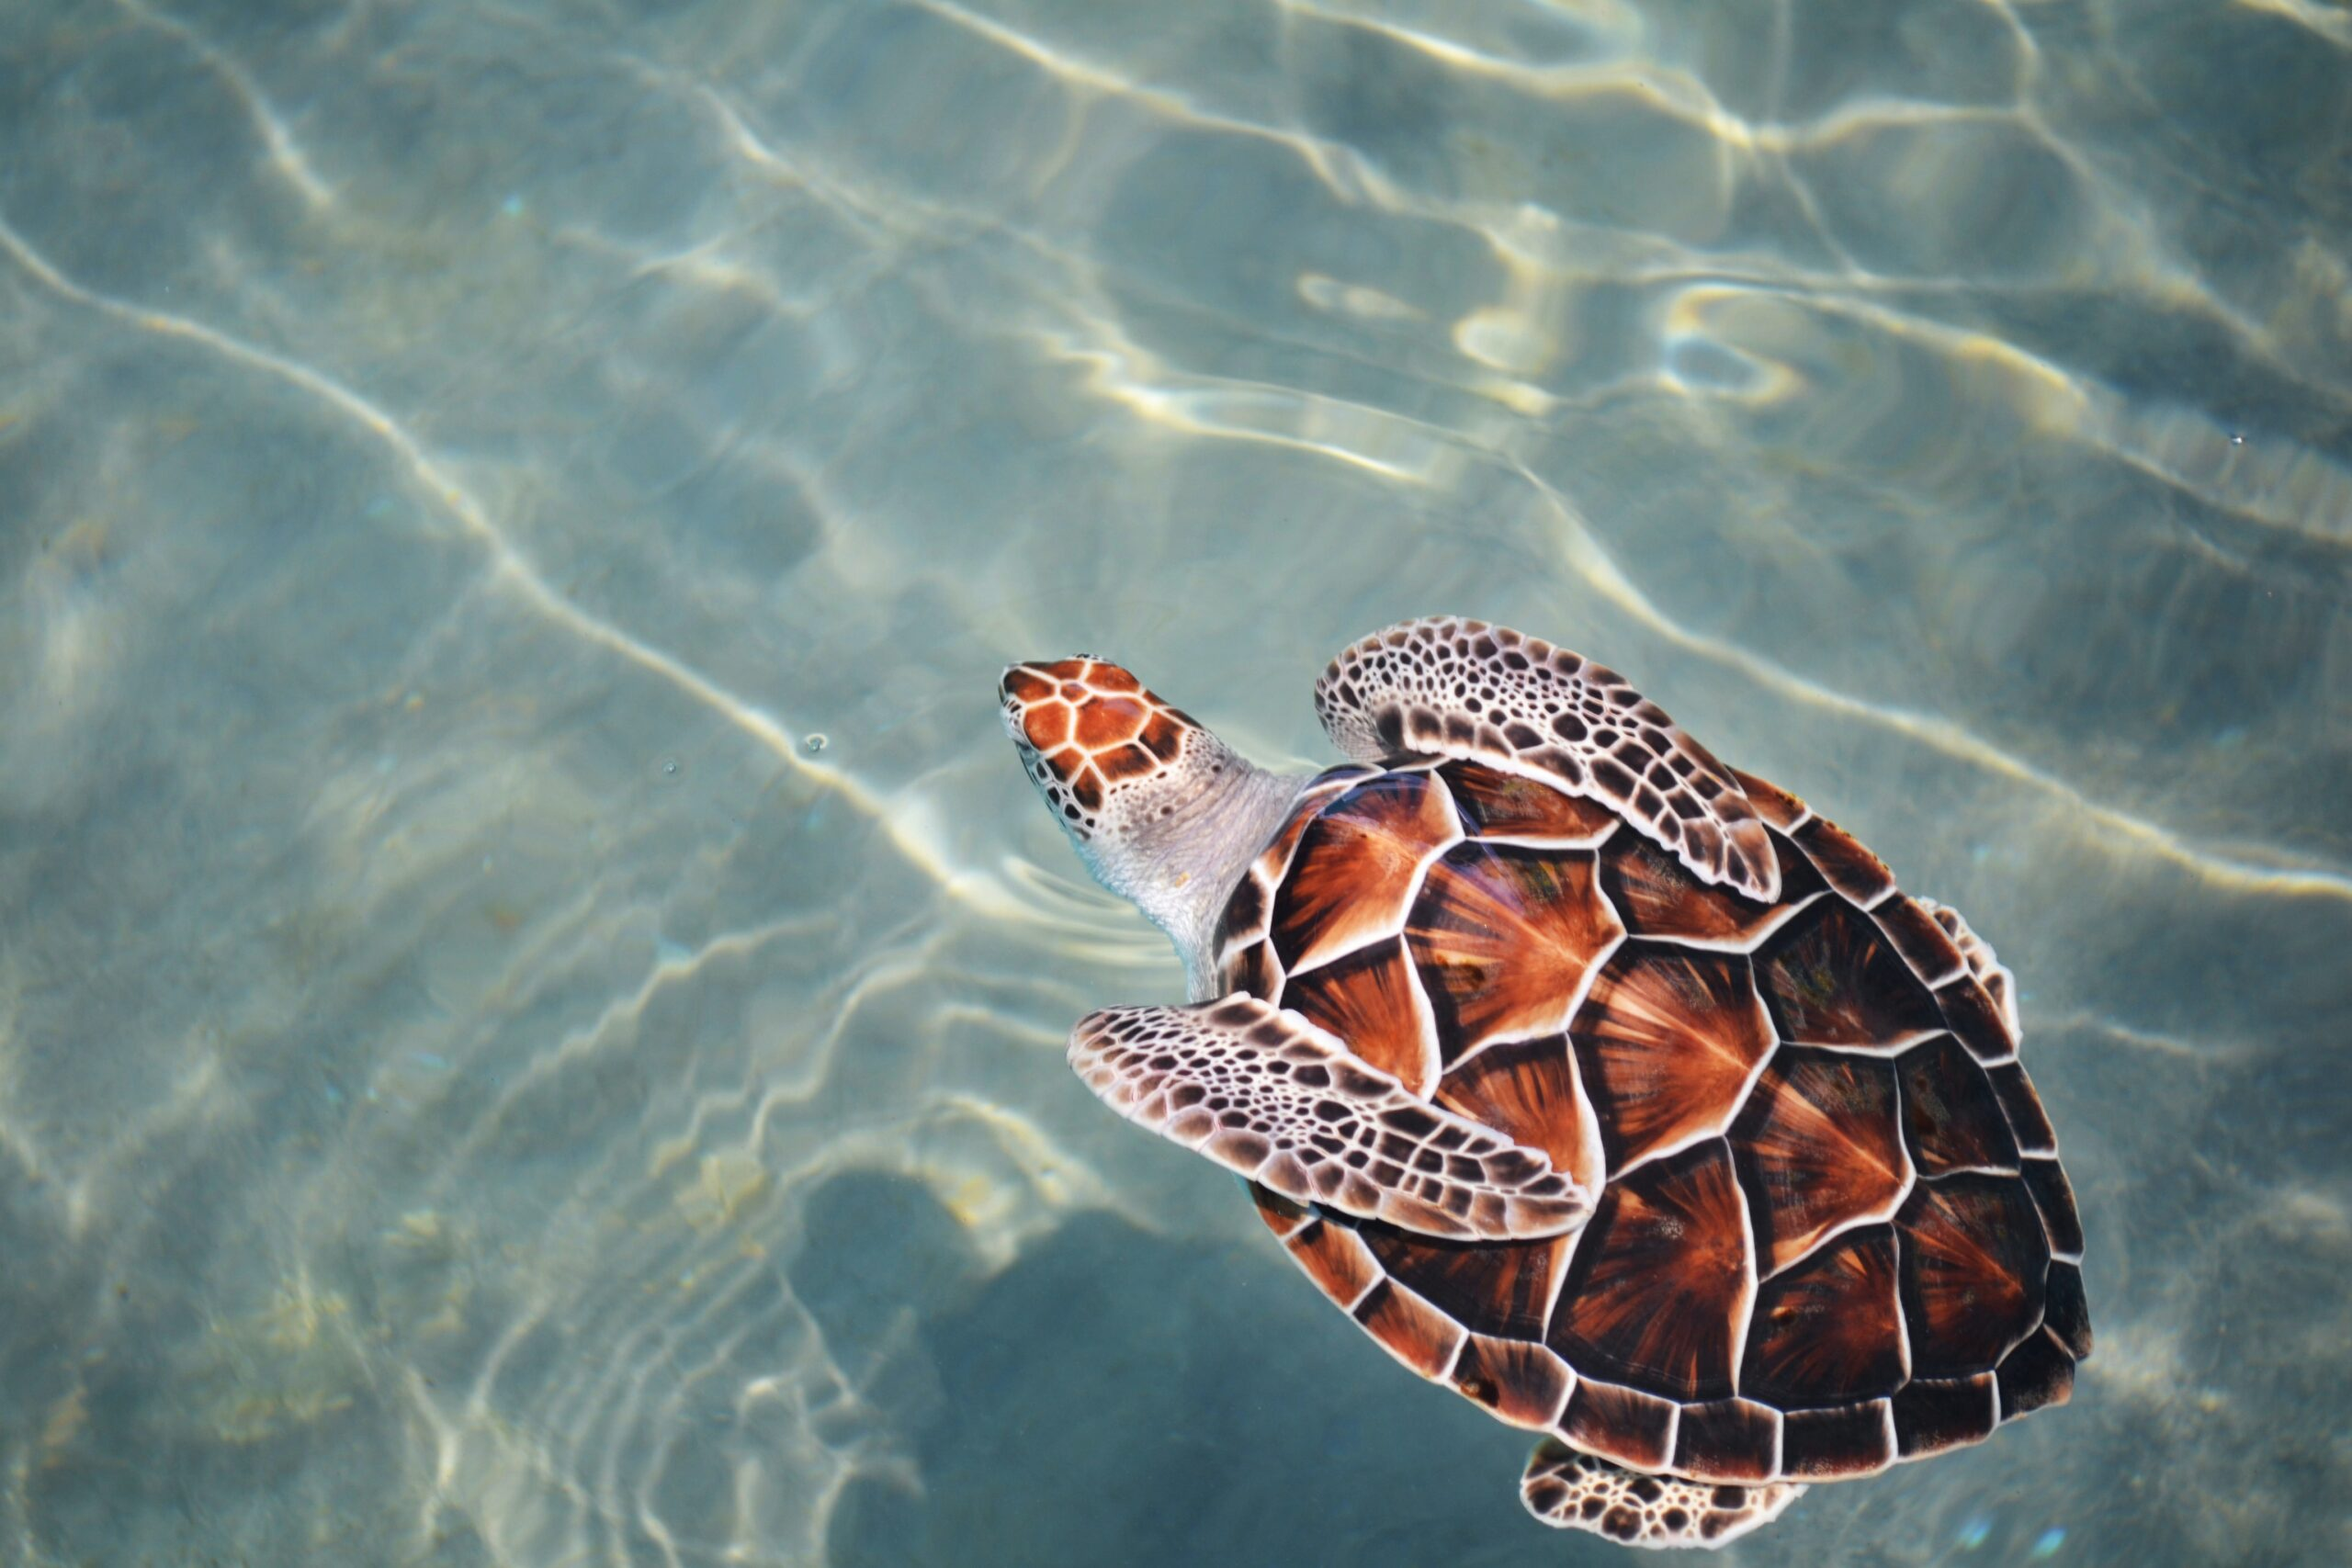 More Than 1,000 Loggerhead Sea Turtles Died in Mexico in 2020